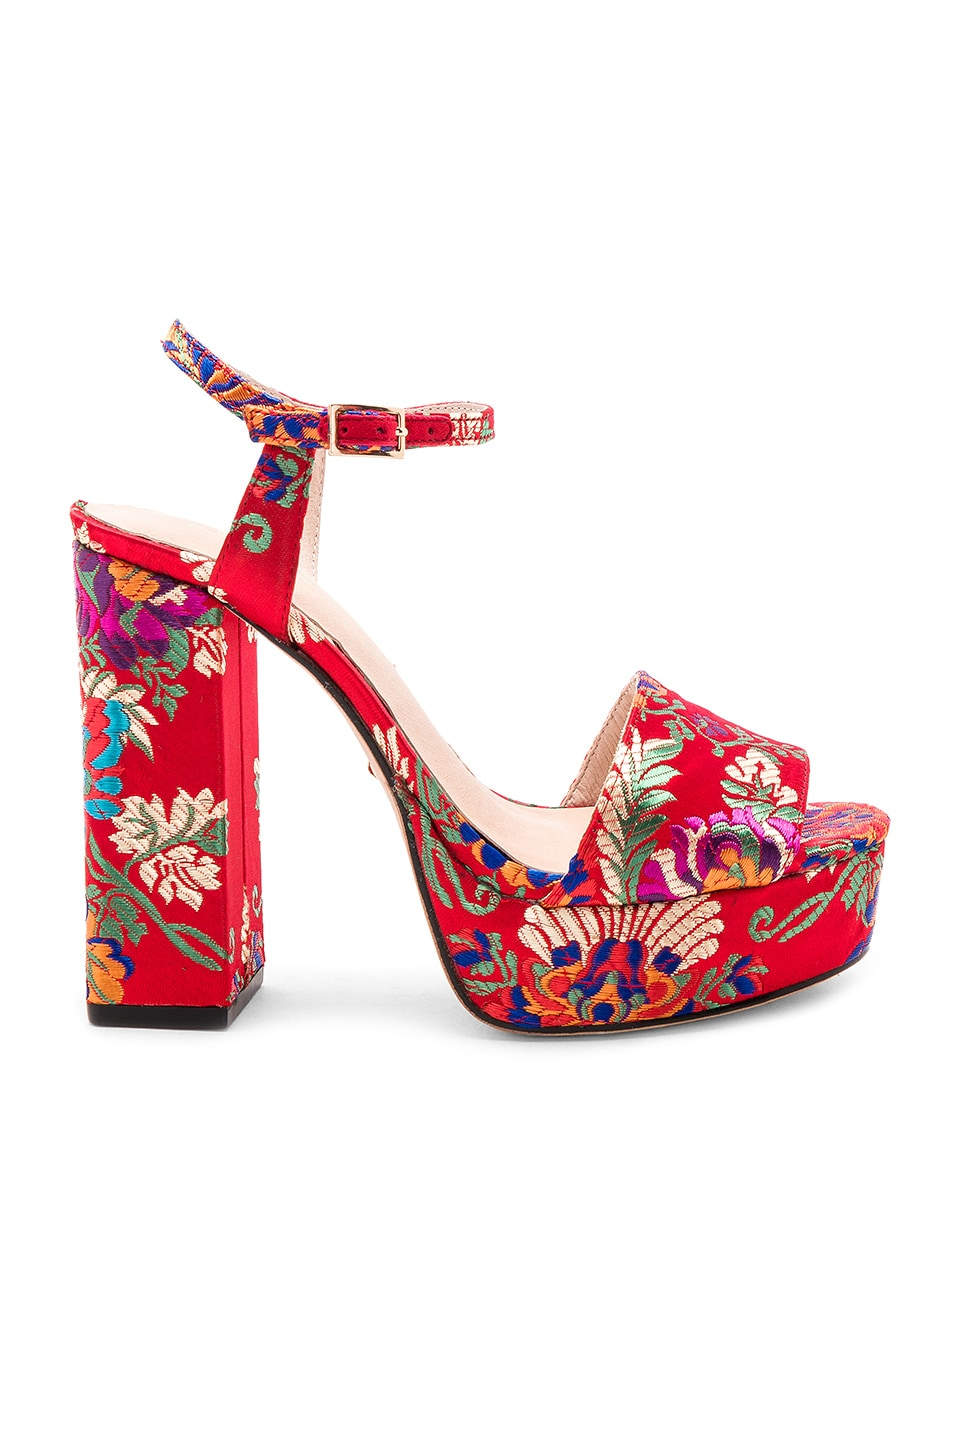 RAYE x REVOLVE Marino Platform in Red Brocade